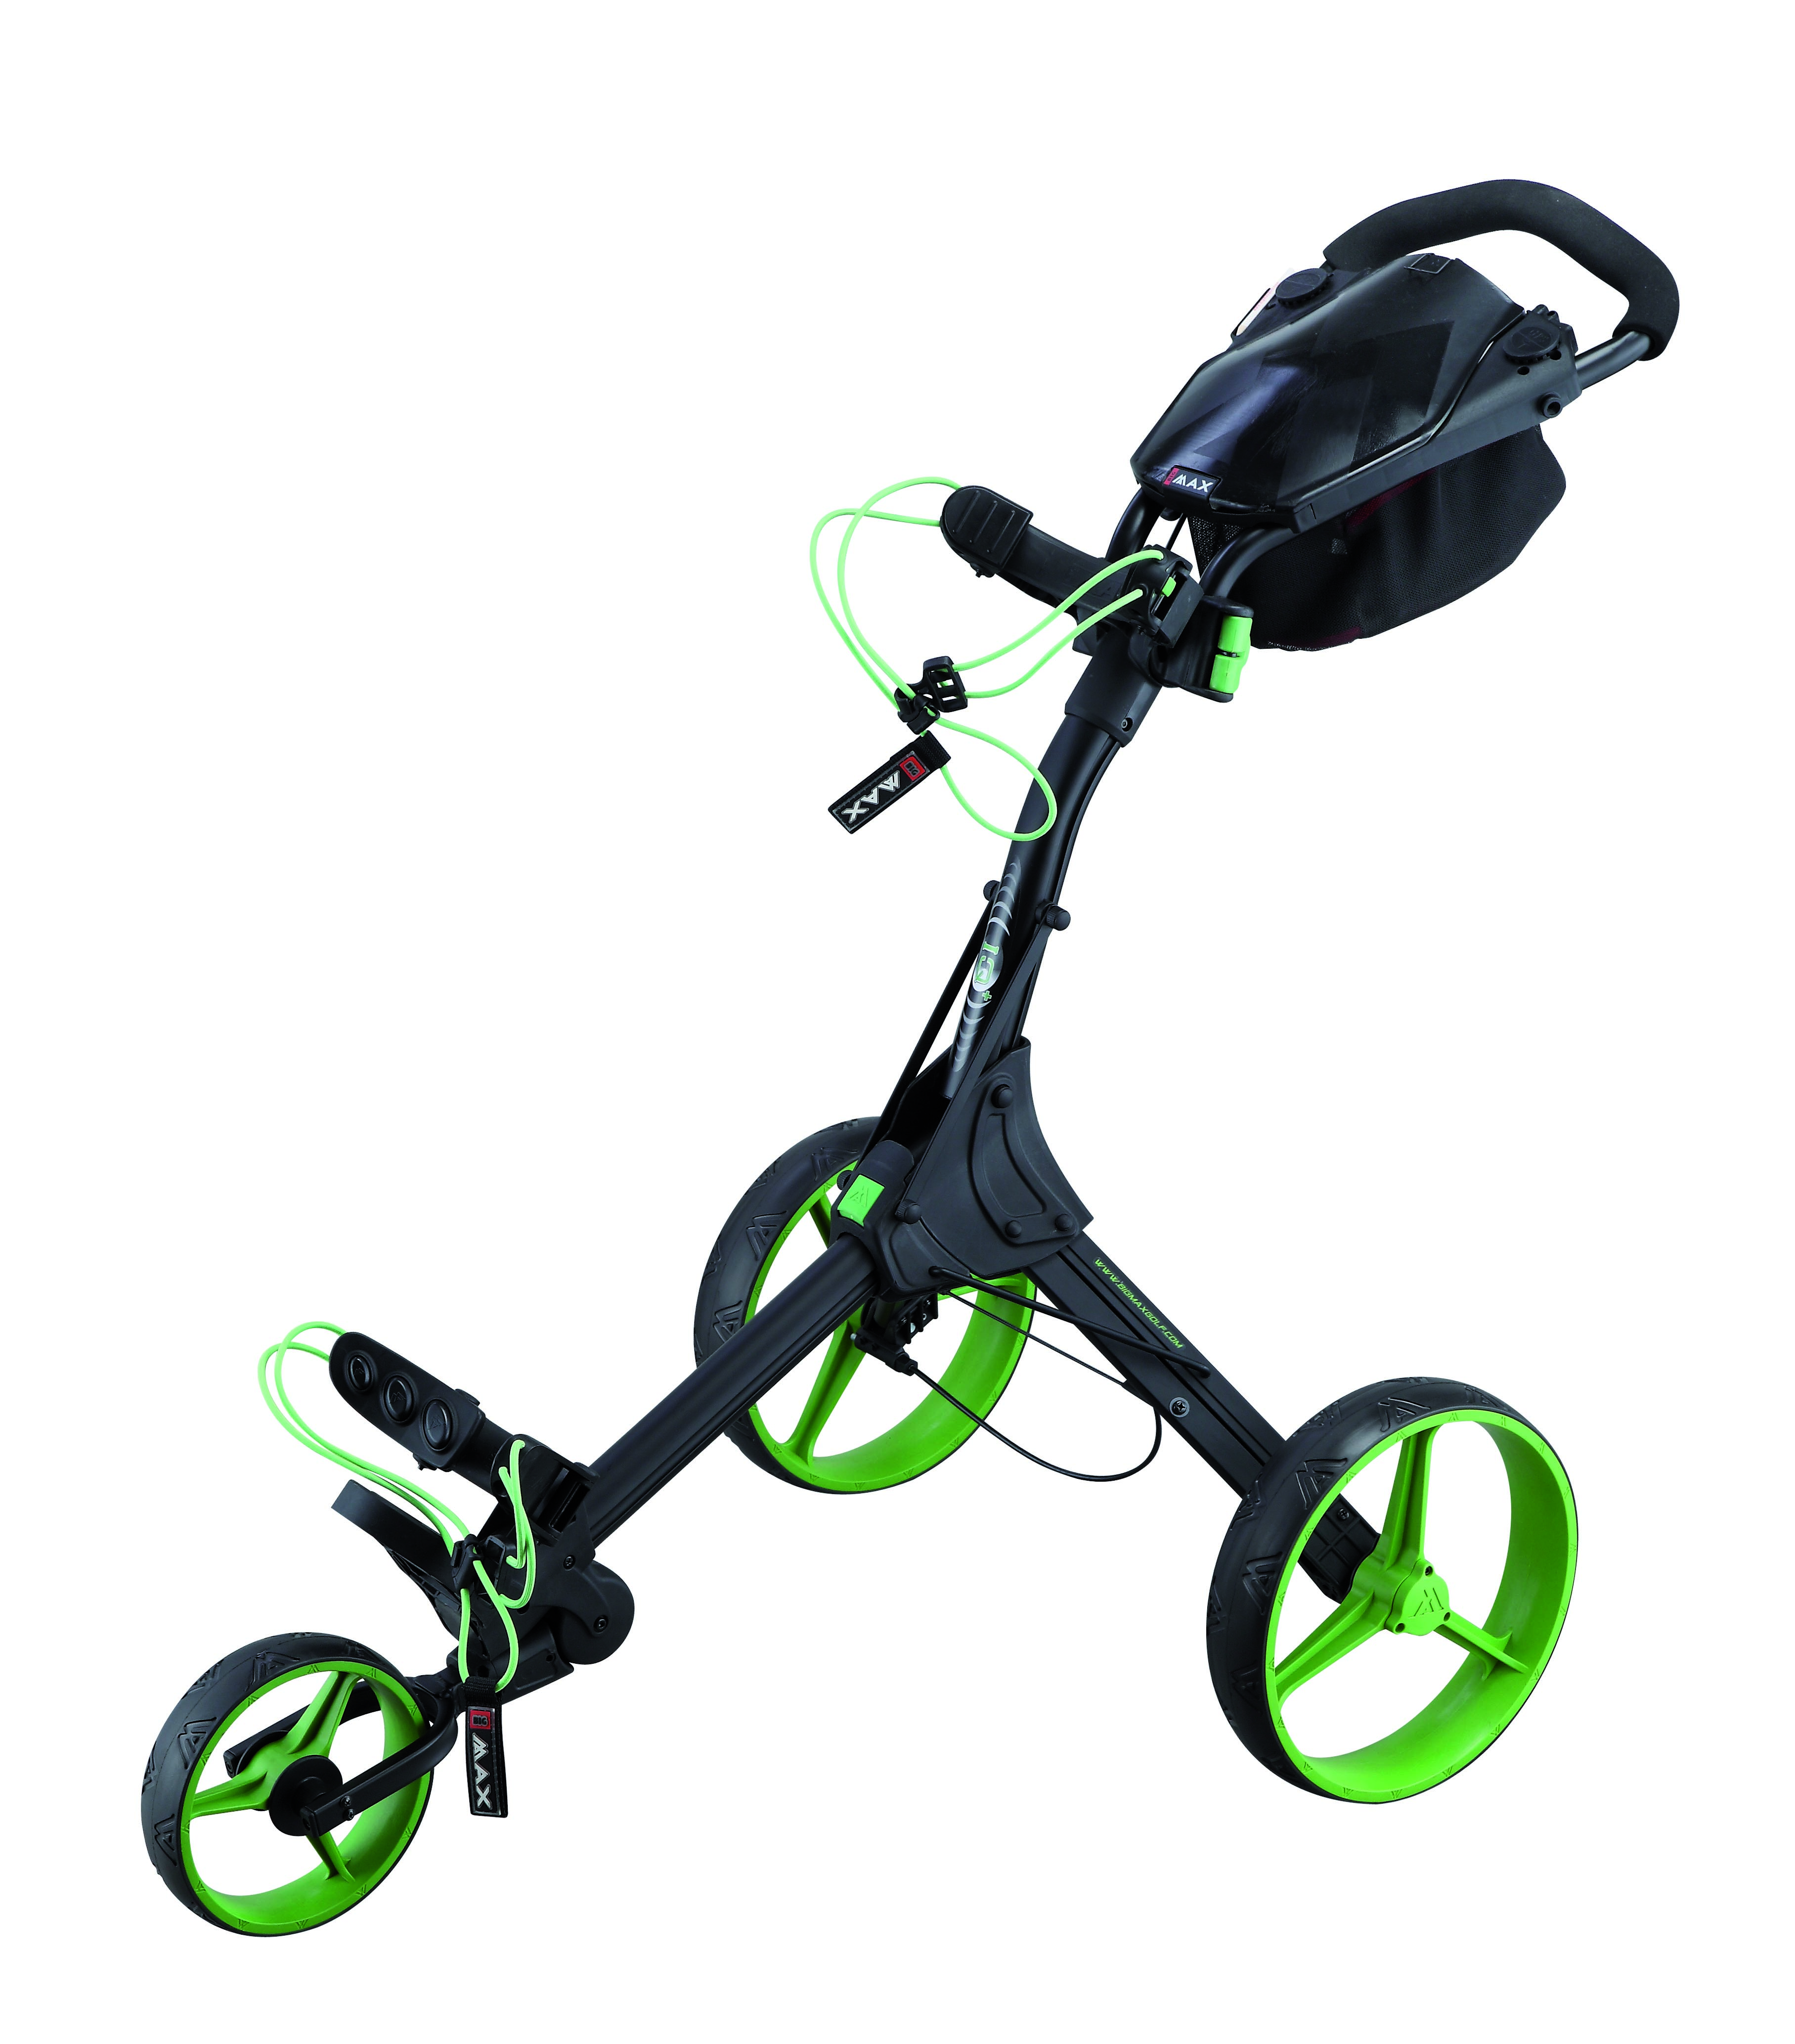 Big Max Autofold Golftrolley.Big Max Launches Ti1000 Autofold And Iq Push Trolleys